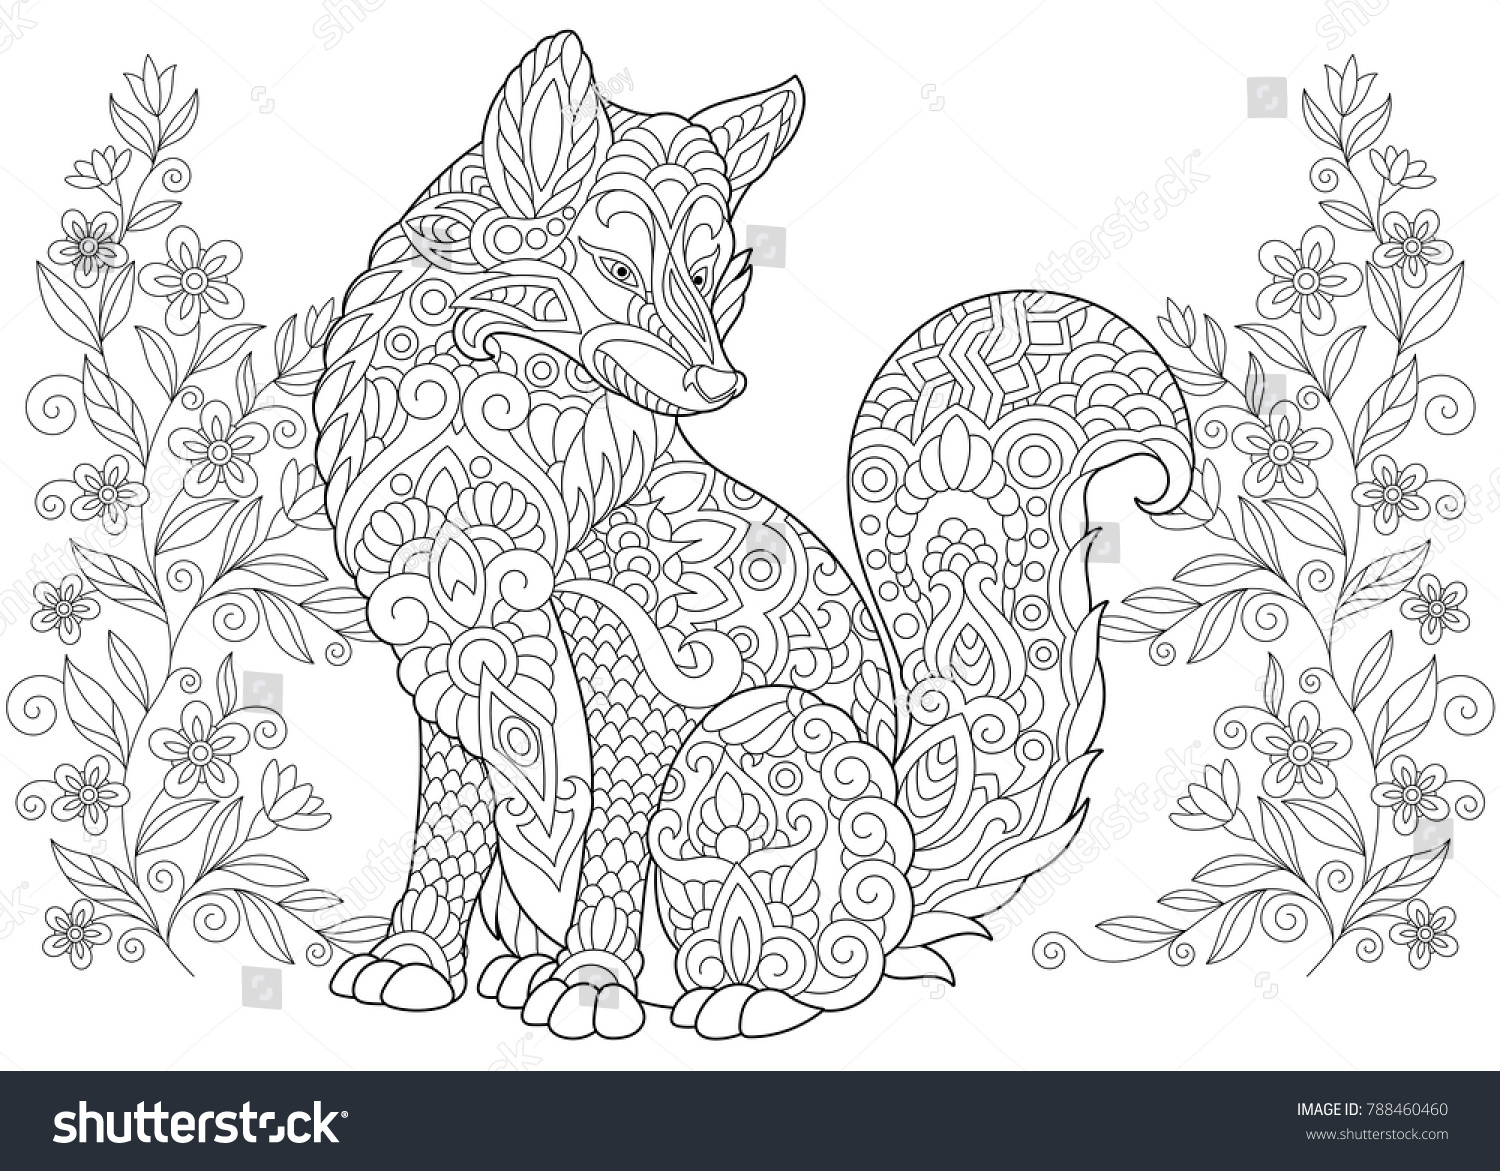 Coloring Pages Totem Animals : Coloring page adult coloring book wild stock photo photo